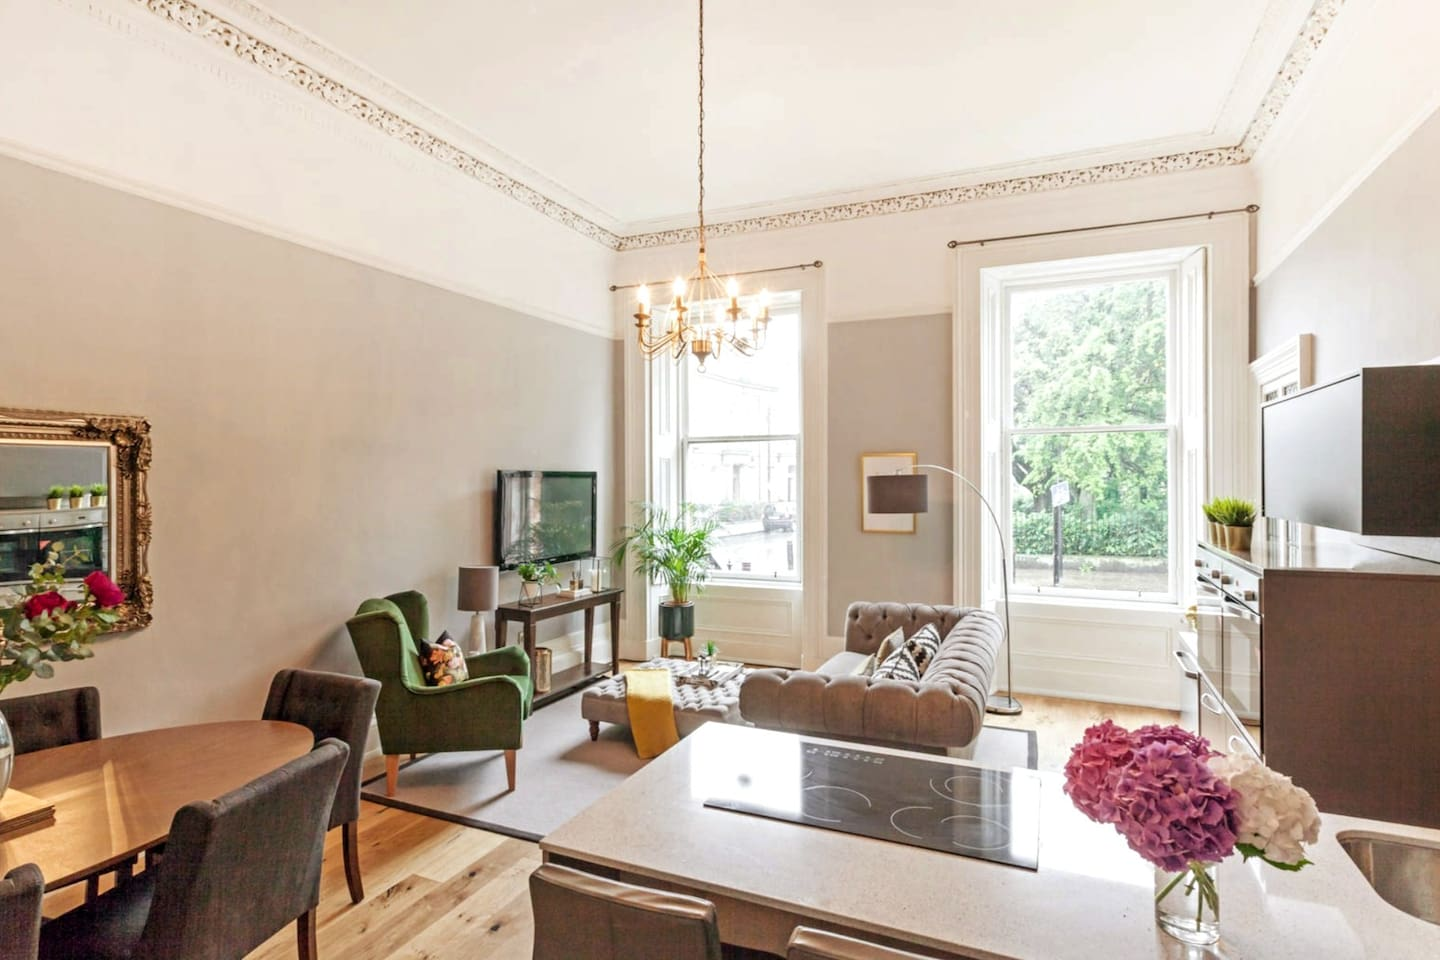 Open plan living, kitchen, dining in former Drawing Room. Grand scale and 4m (13ft) high ornate ceilings